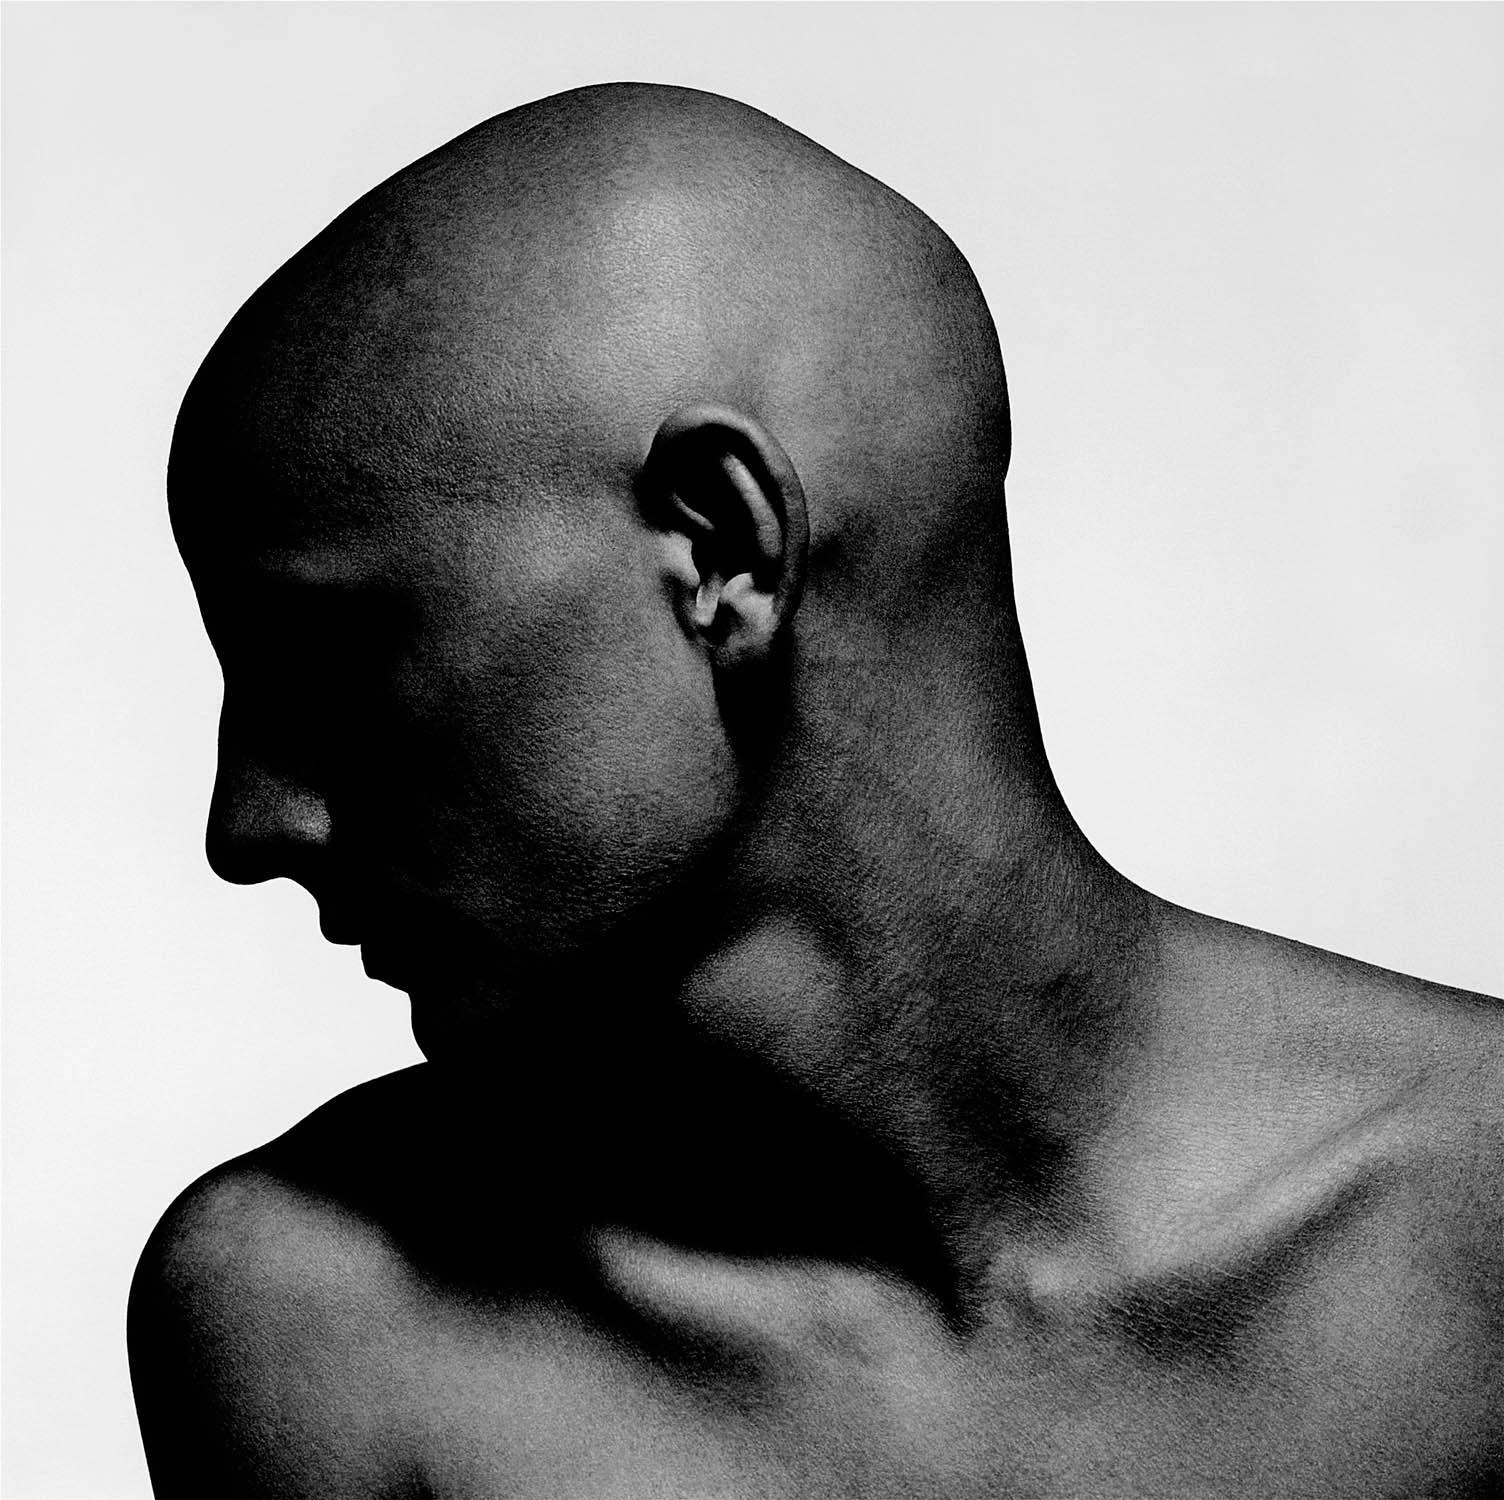 Dark portrait of bald male with strong profile by photographer Kenneth Rimm